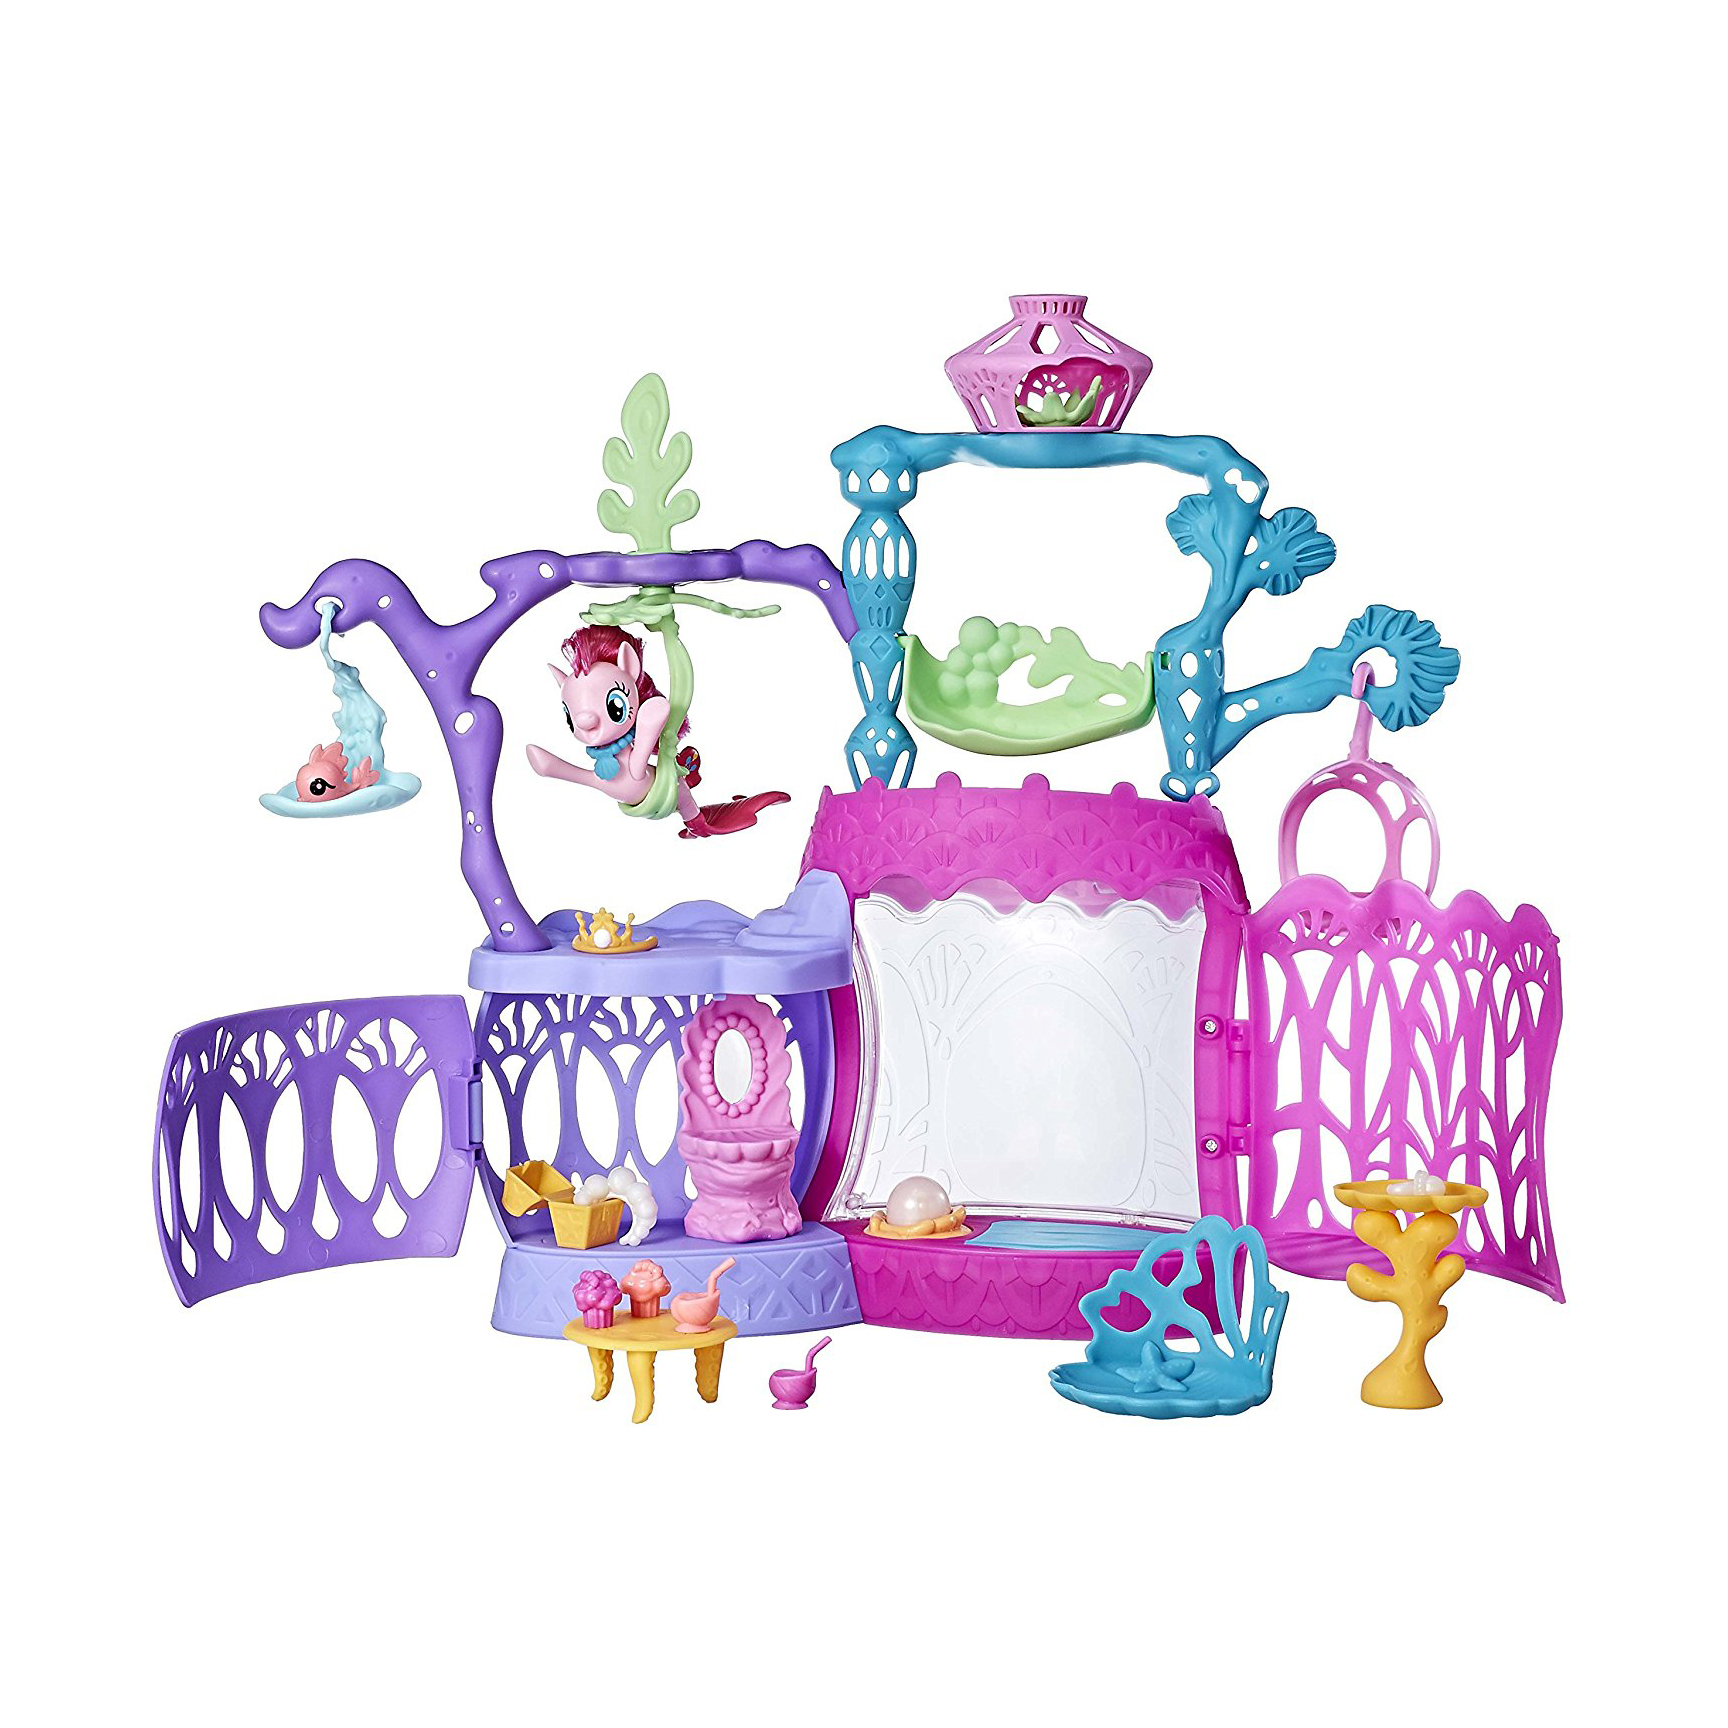 """My Little Pony: The Movie"" Seashell Lagoon Playset"